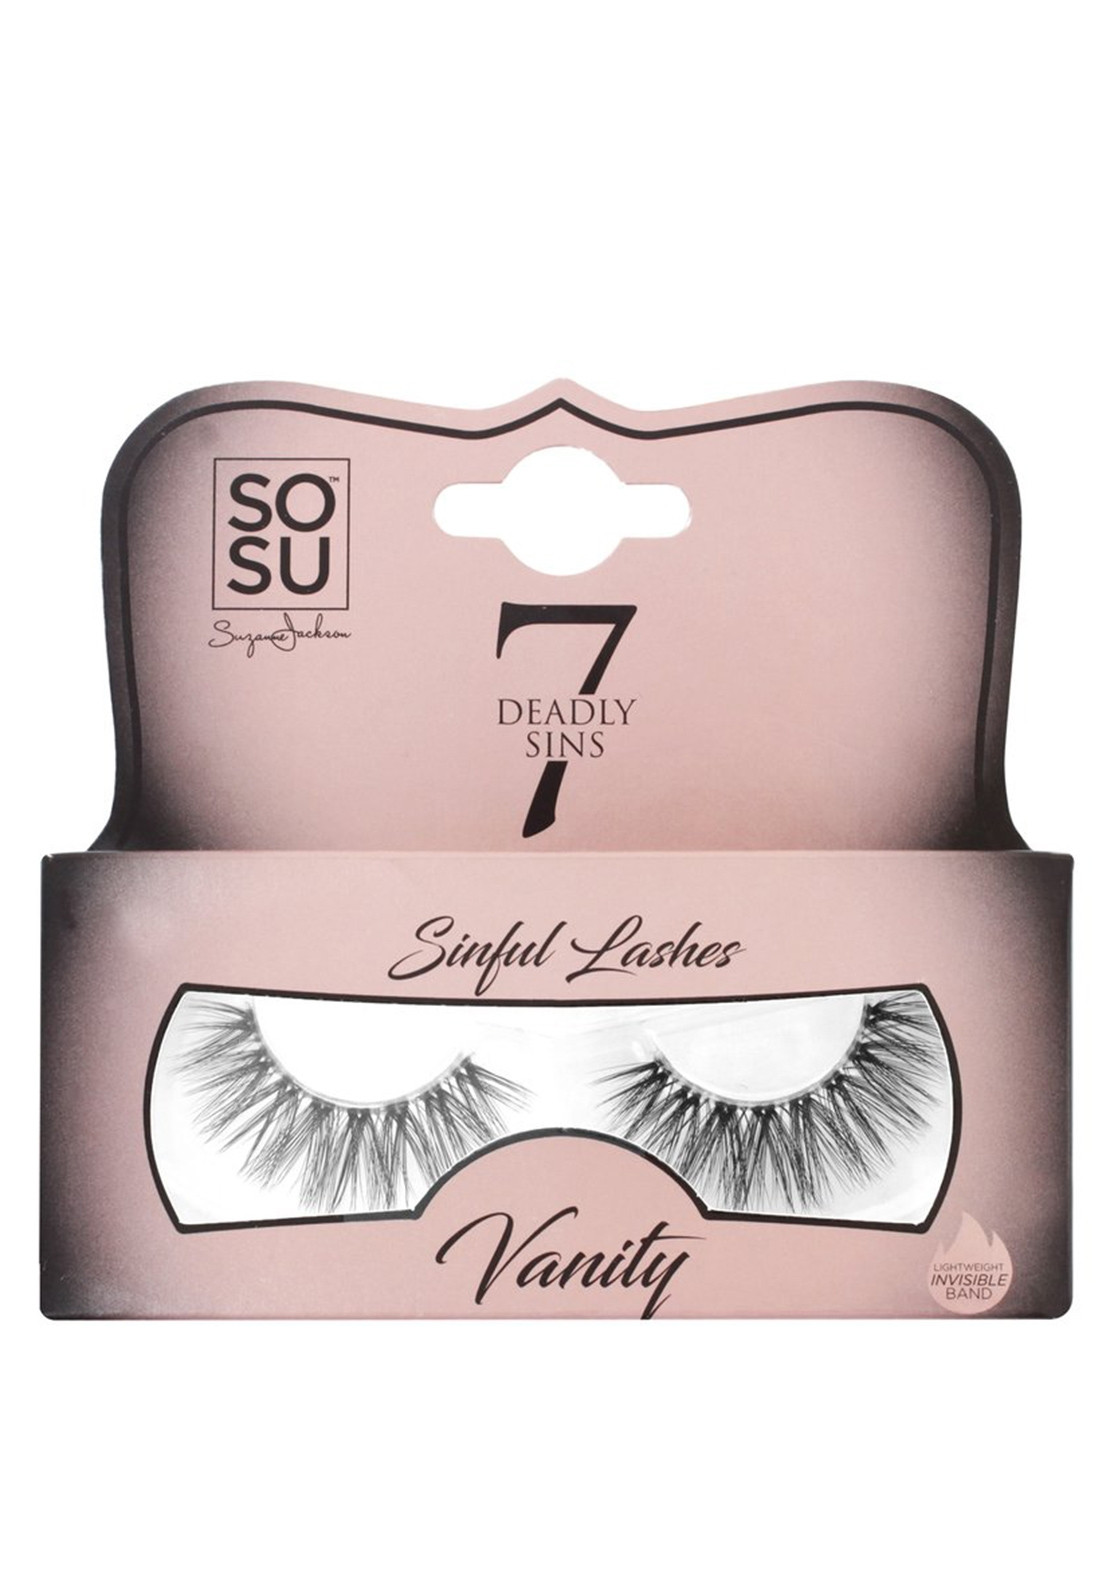 6f8b11d97be SoSu 7 Deadly Sins Vanity Lashes. Be the first to review this product